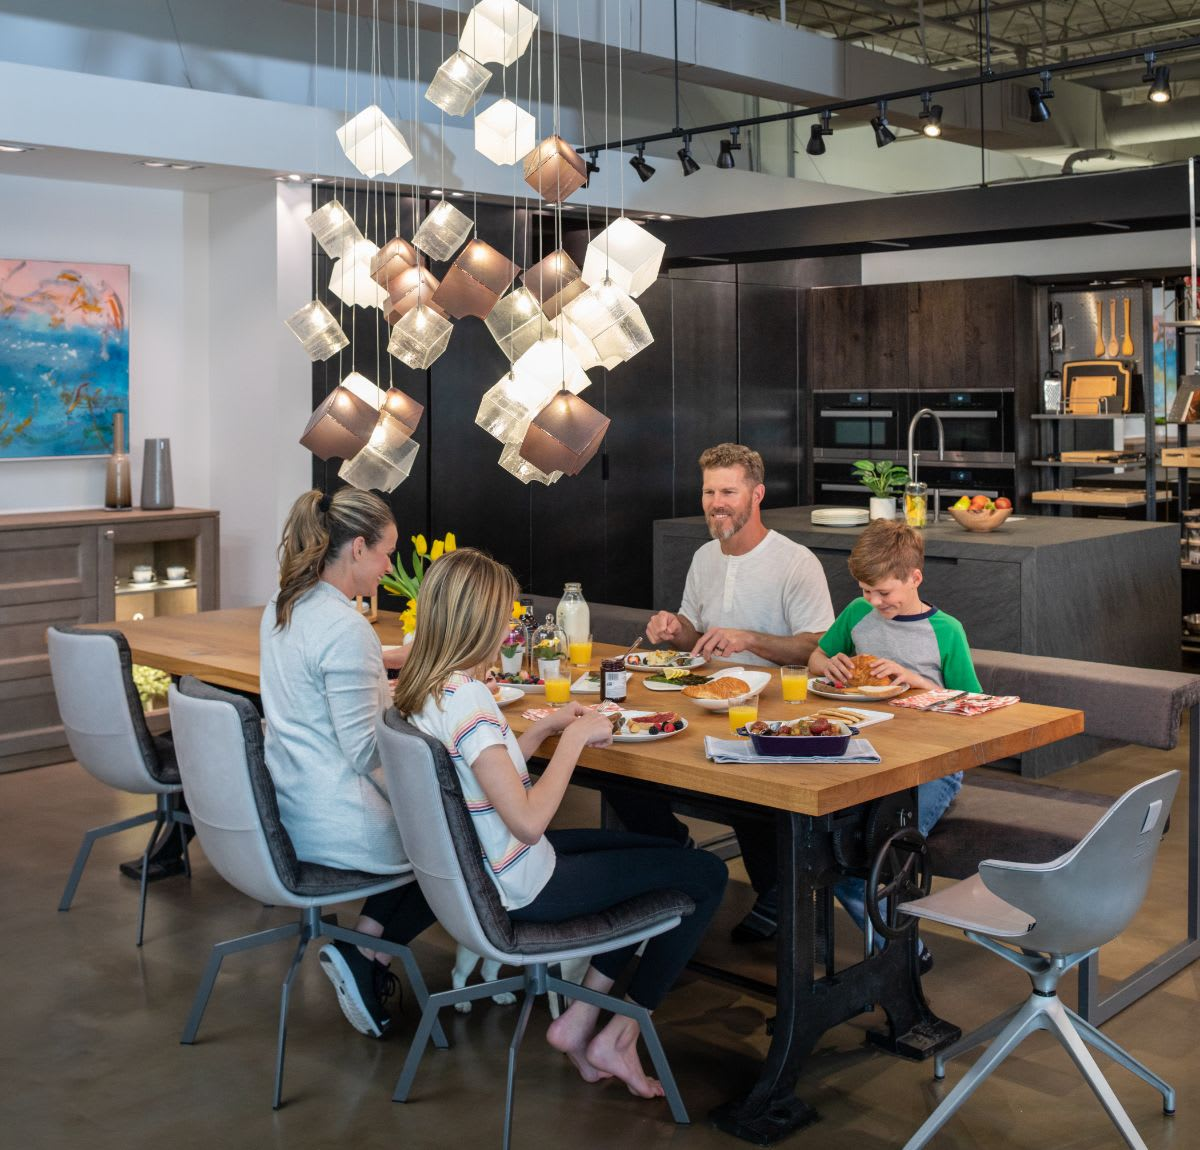 family eating a home-cooked meal in luxury dining chairs custom-designed by eggersmann